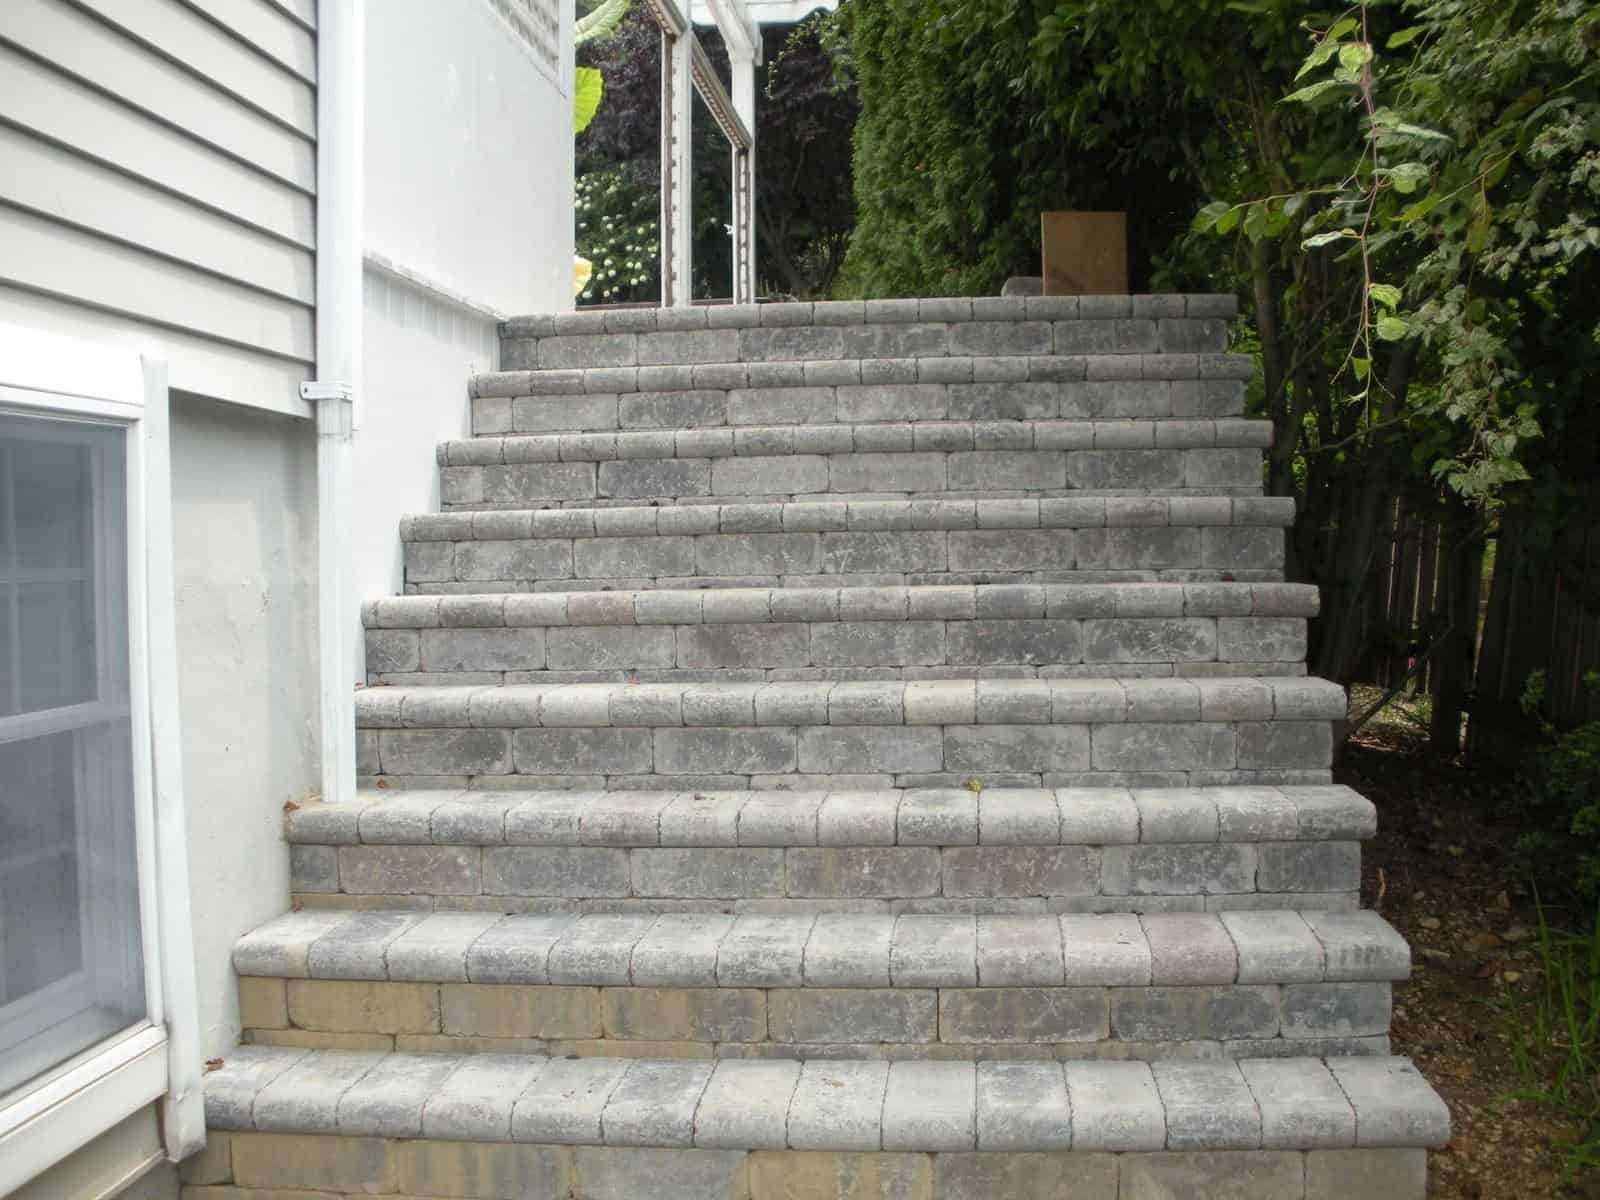 Paver Steps - Unilock Tumbled Brussels Block Paver Steps - Sandstone and Limestone Mix - Fullnose Treads - Roslyn, Long Island NY